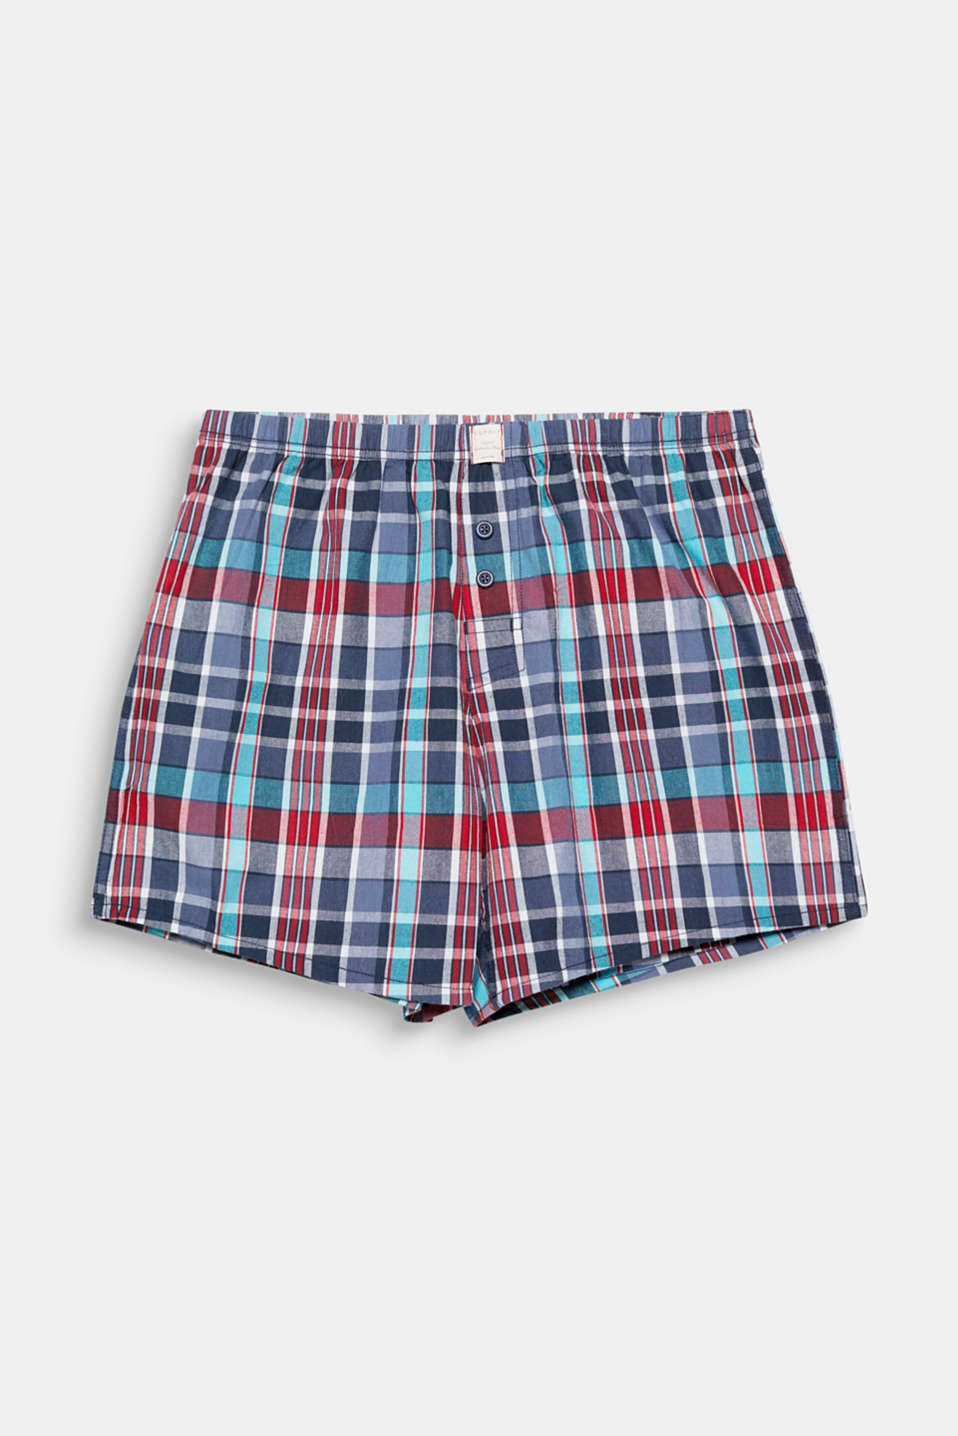 The striking, colourful checks give these boxer shorts made of pure cotton their modern look!